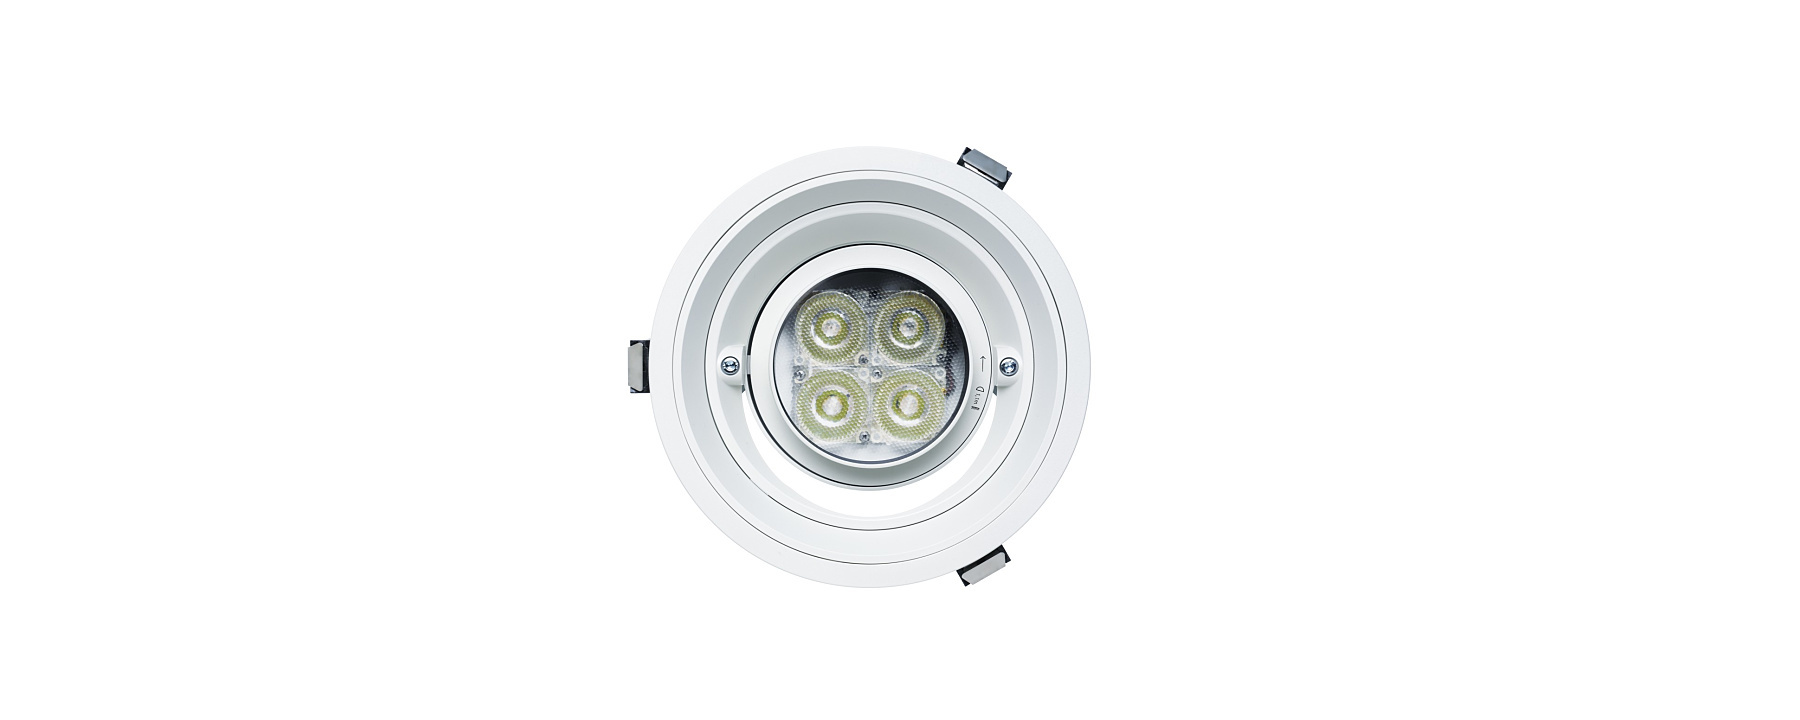 Quintessence round - Recessed spotlights, recessed floodlights and recessed wallwashers